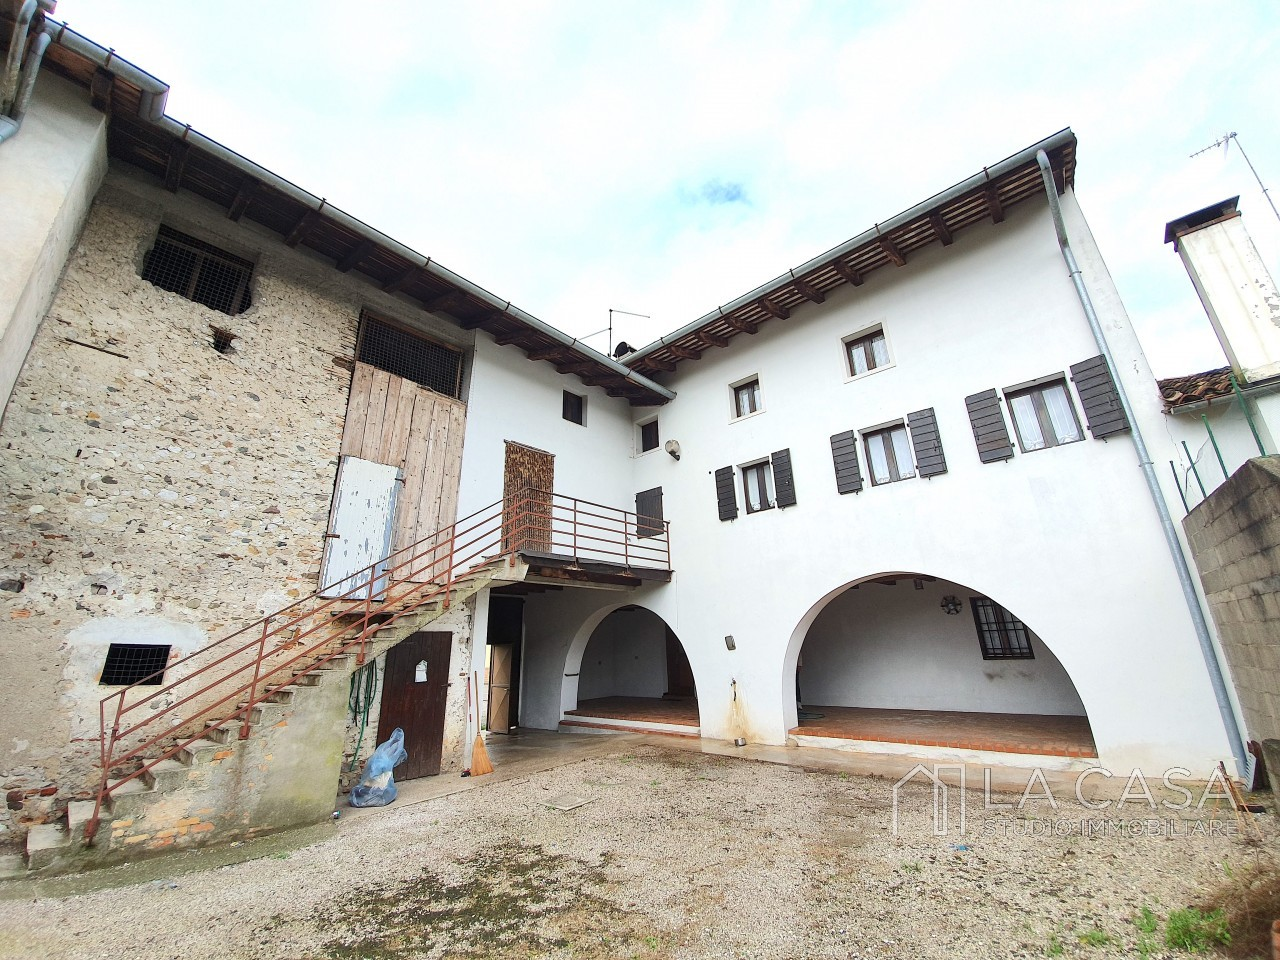 Casa indipendente in Linea - Rif.C6 https://images.gestionaleimmobiliare.it/foto/annunci/191125/2114313/1280x1280/000__20191116_110852_wmk_0.jpg